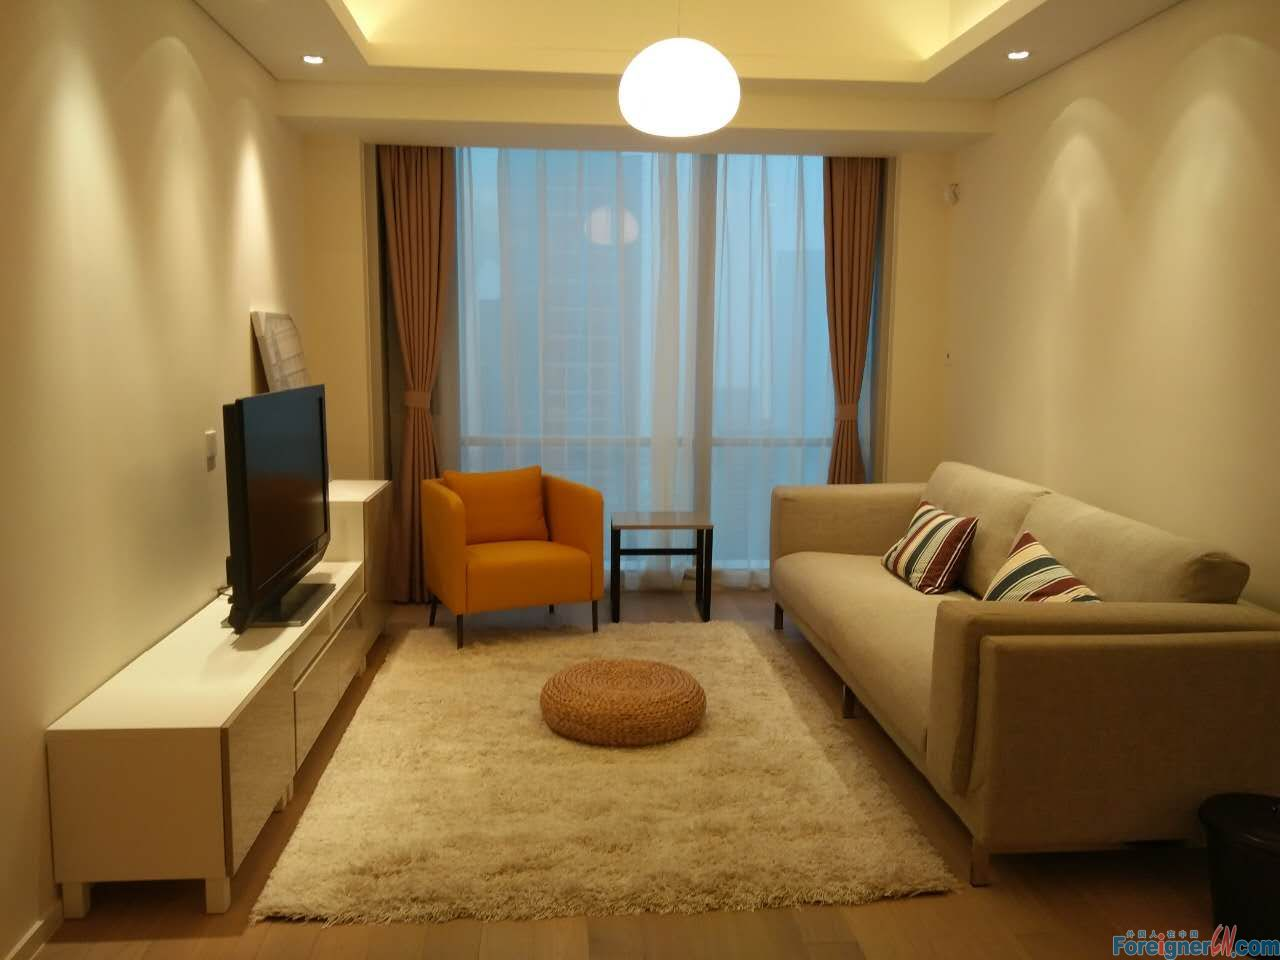 The summit,brandly new compound,2brs,located in the CBD center of SIP,close to the Suzhou center,subway